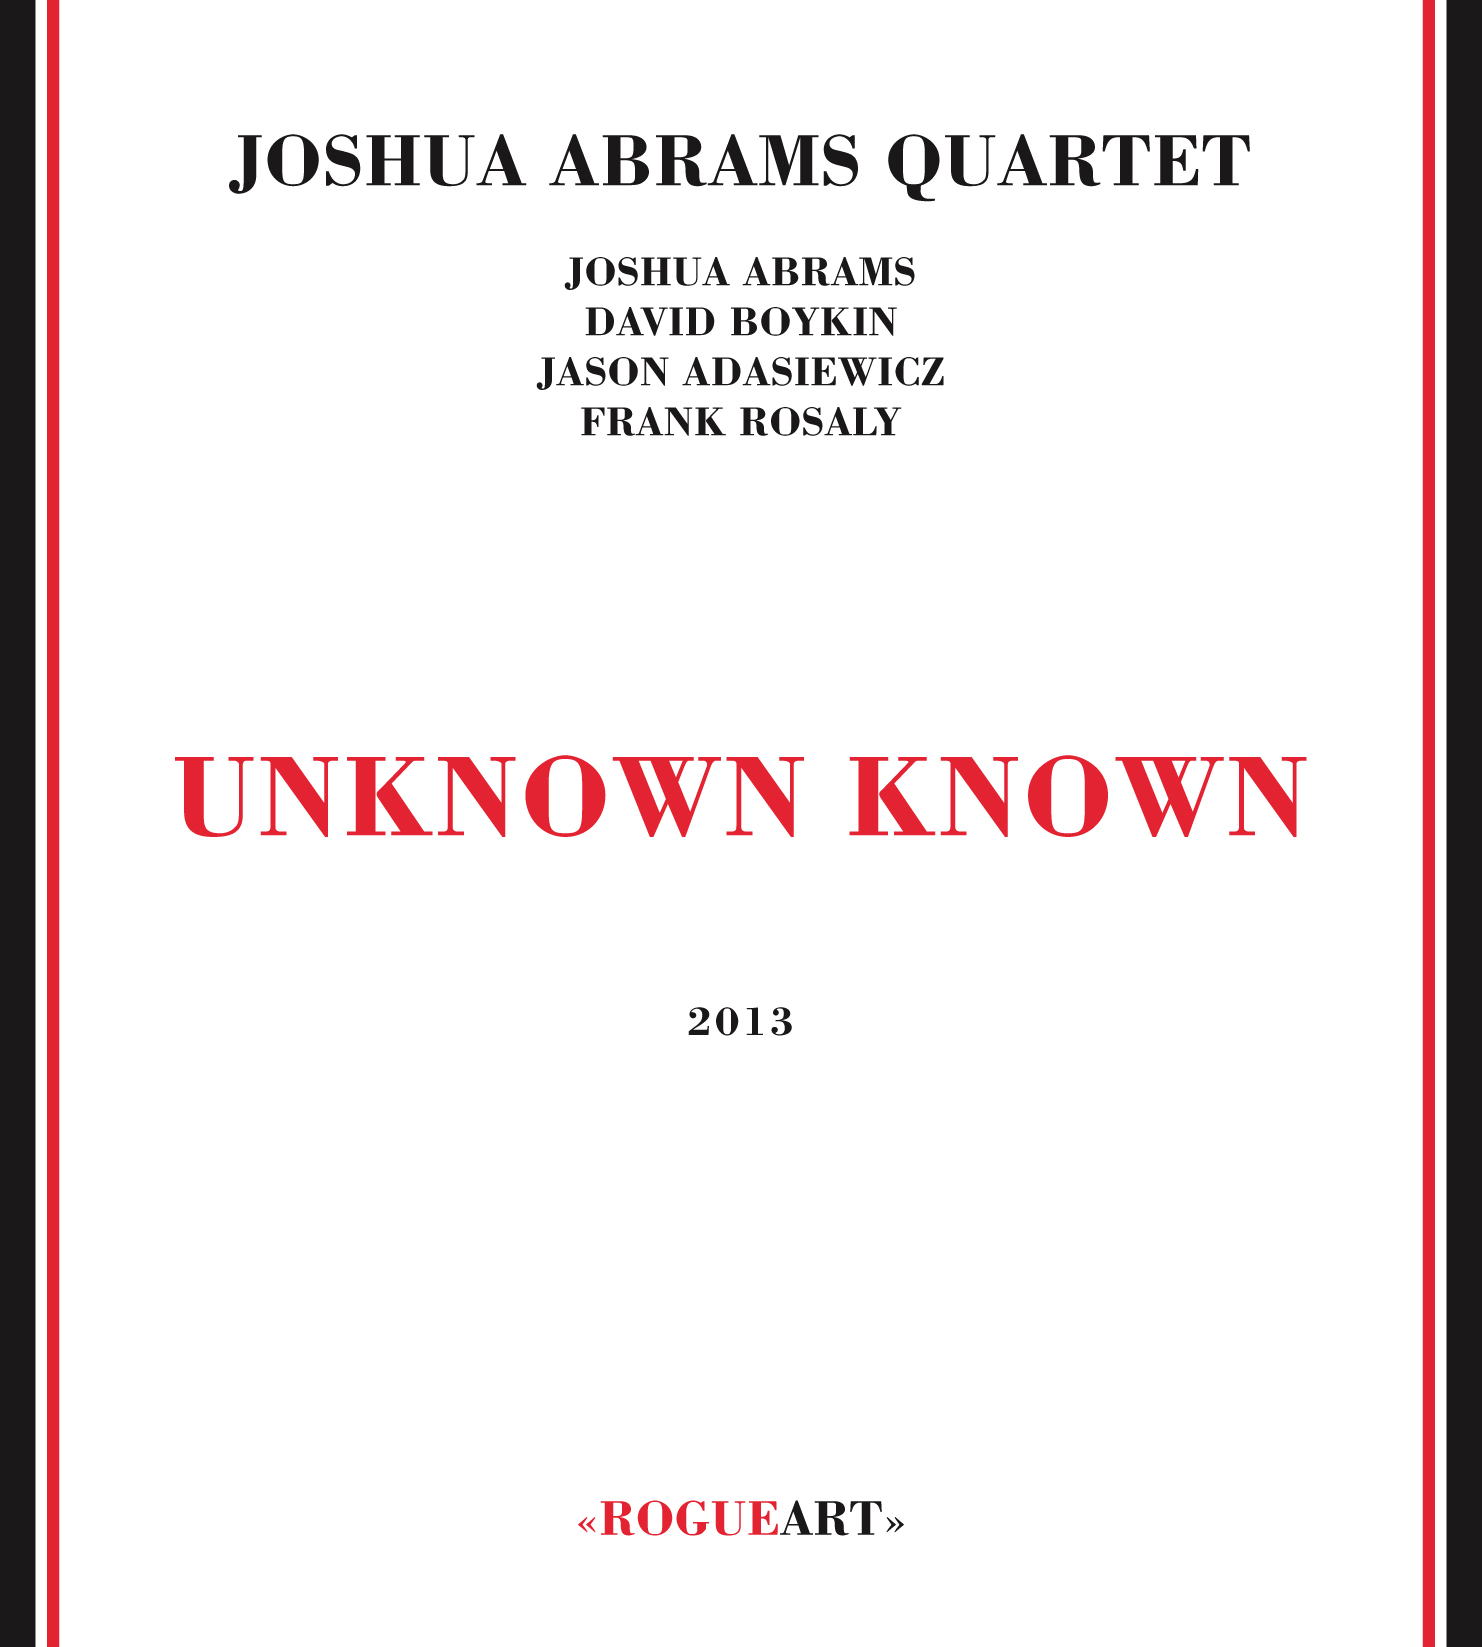 Front cover of the album UNKNOWN KNOWN